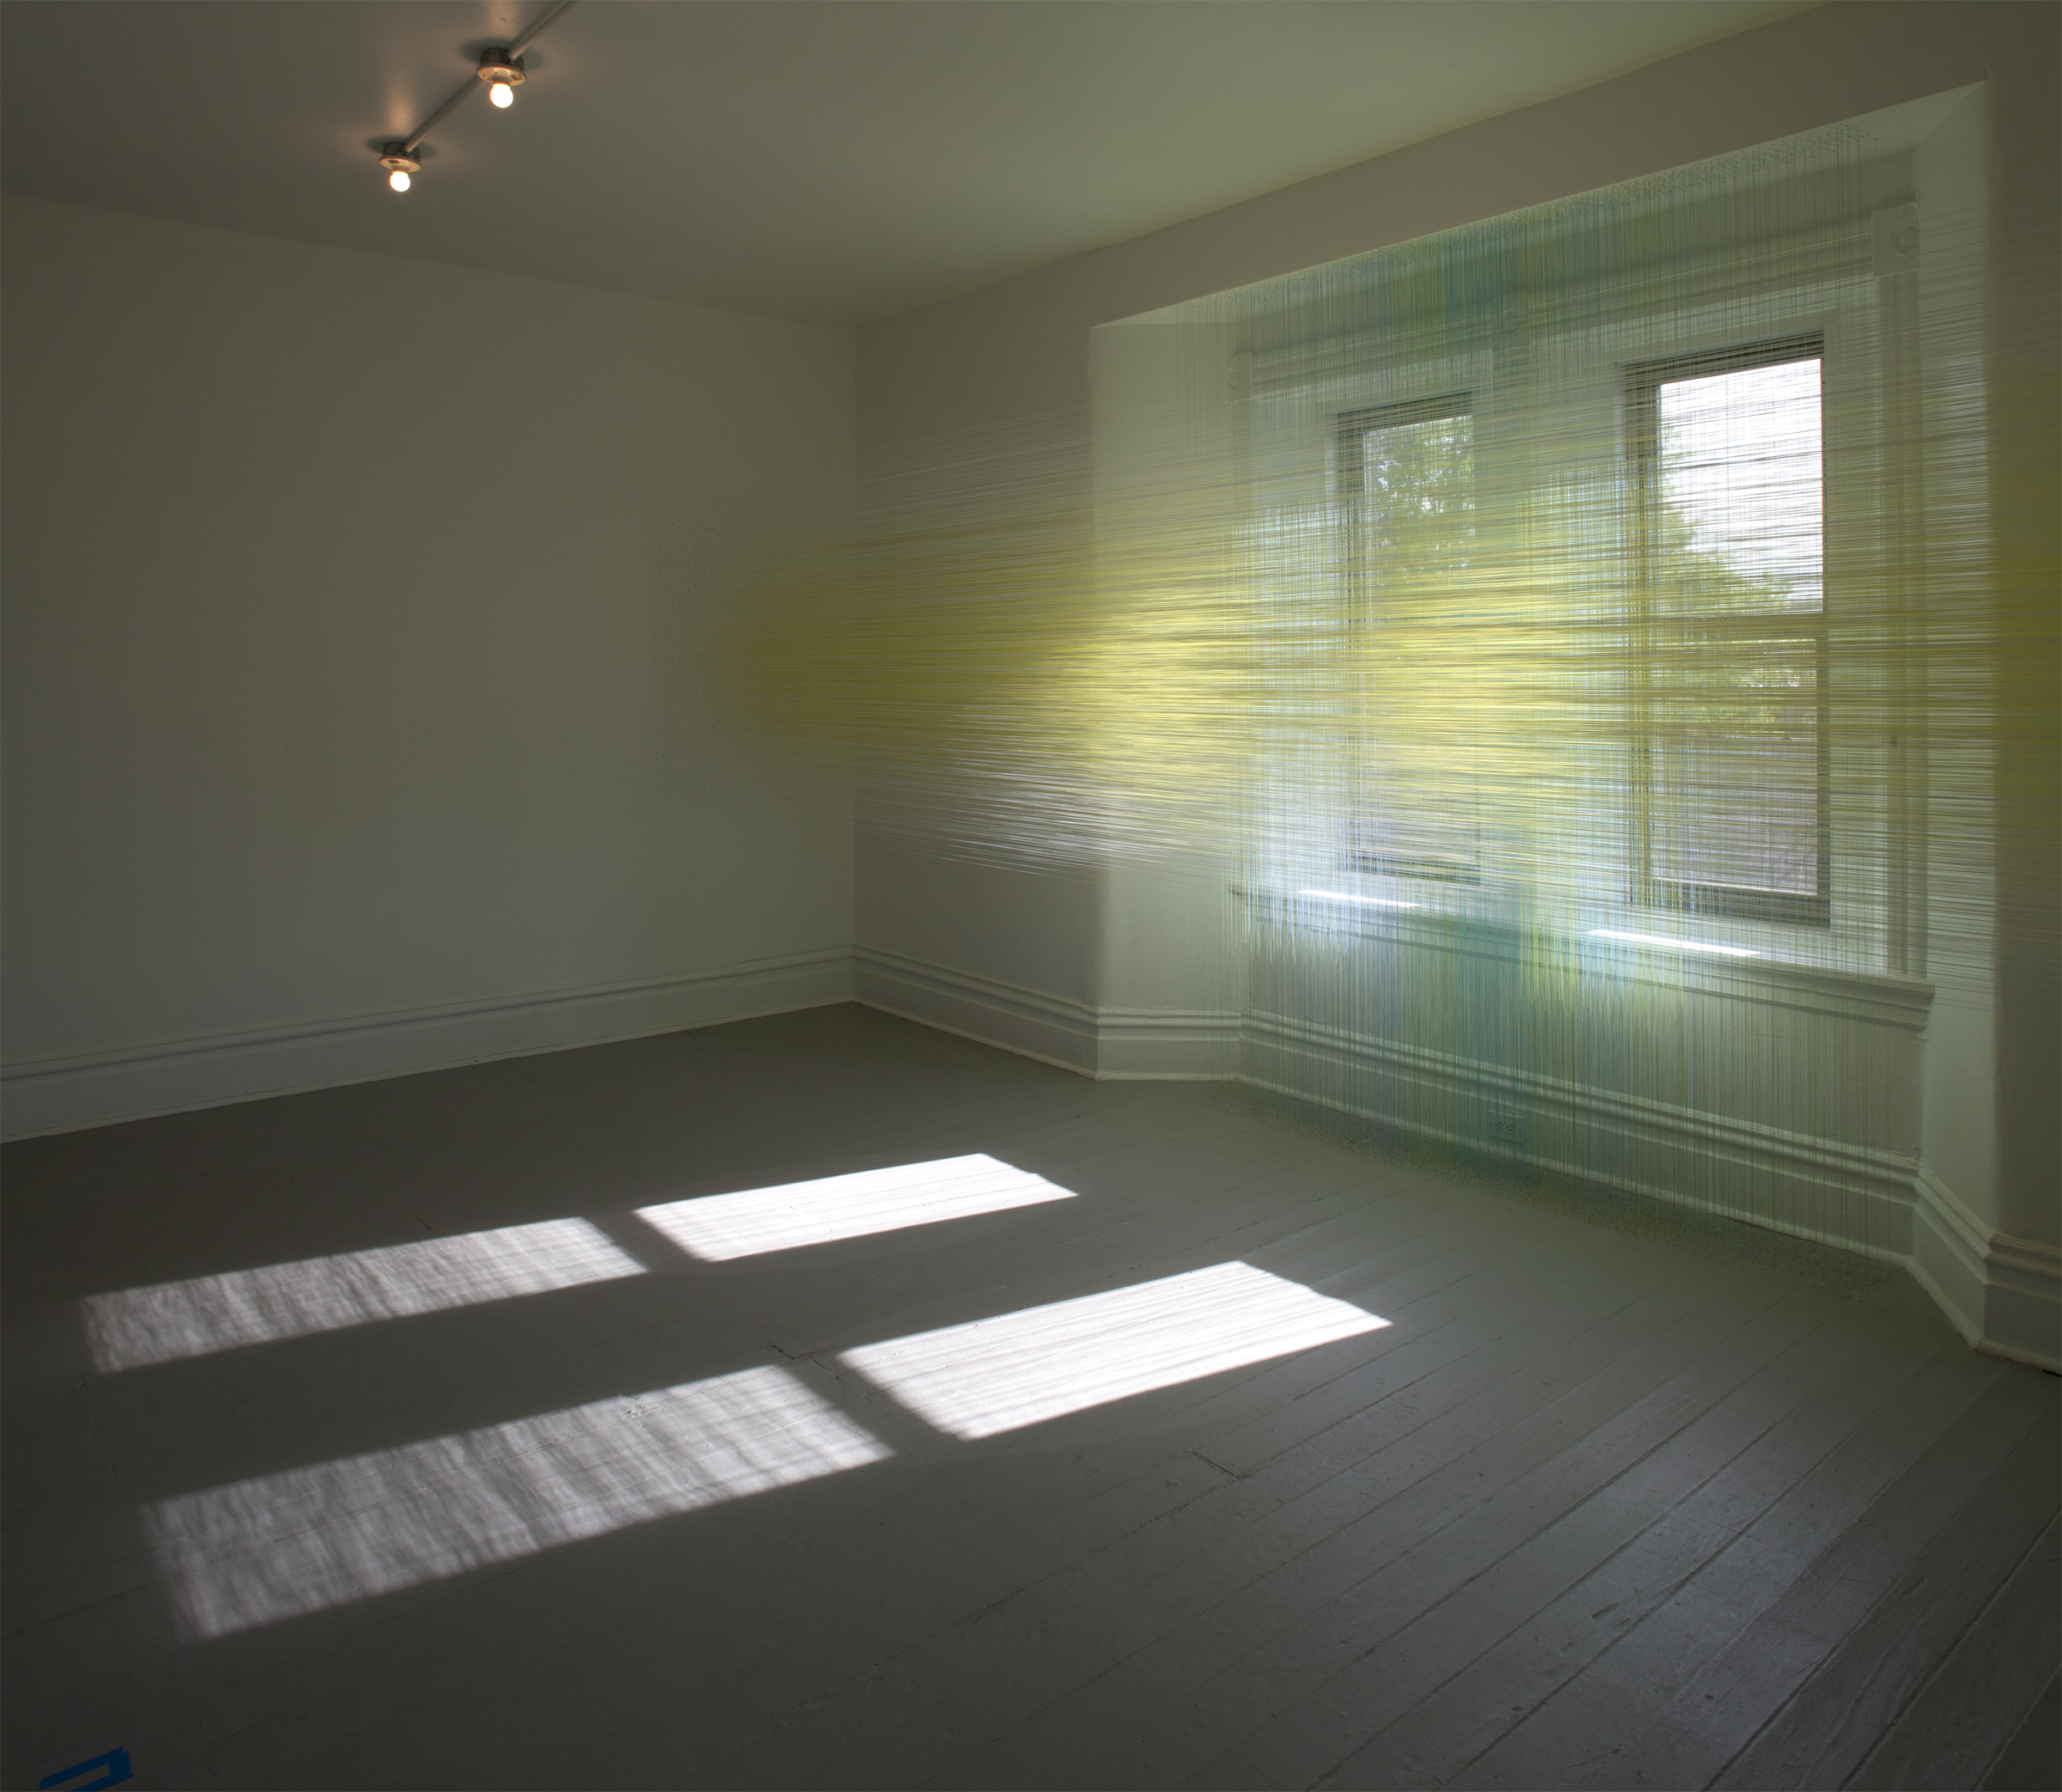 Anne Lindberg  shift lens , 2015  thread and staples, @ The Mattress Factory, Pittsburgh, PA group exhibition titled Factory Installed, up through March 2016